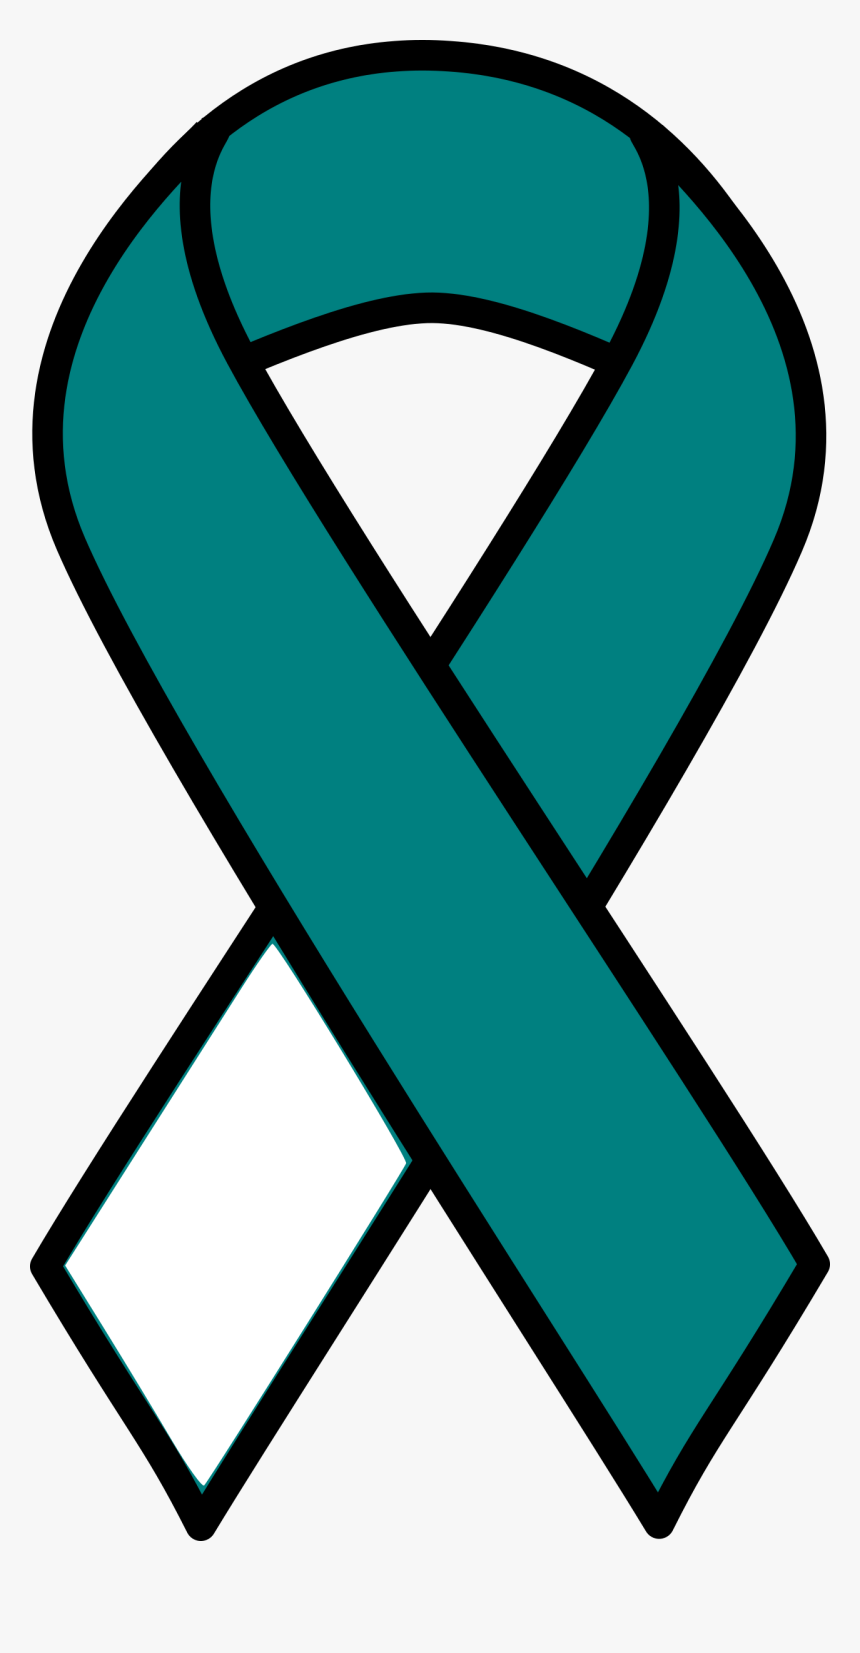 Cervical Cancer Ribbon Clip Arts Thyroid Cancer Ribbon Svg Hd Png Download Transparent Png Image Pngitem